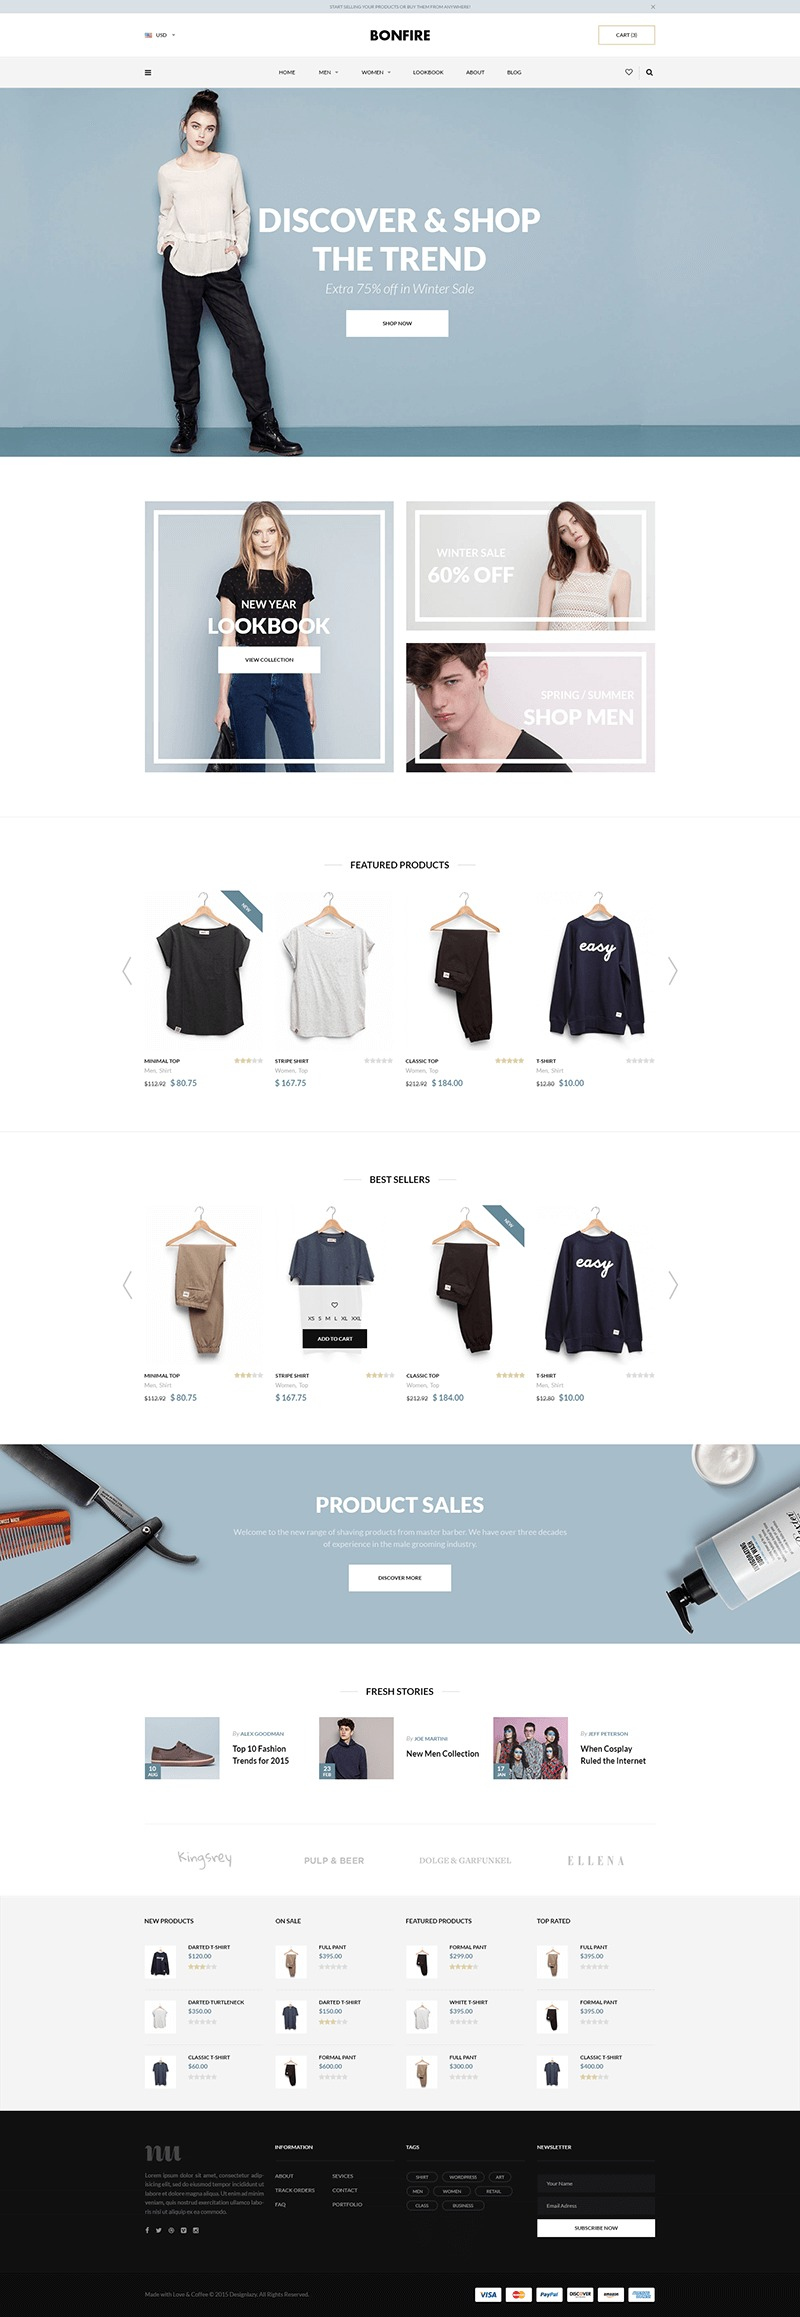 Bonfire – E-commerce Website Home PSD